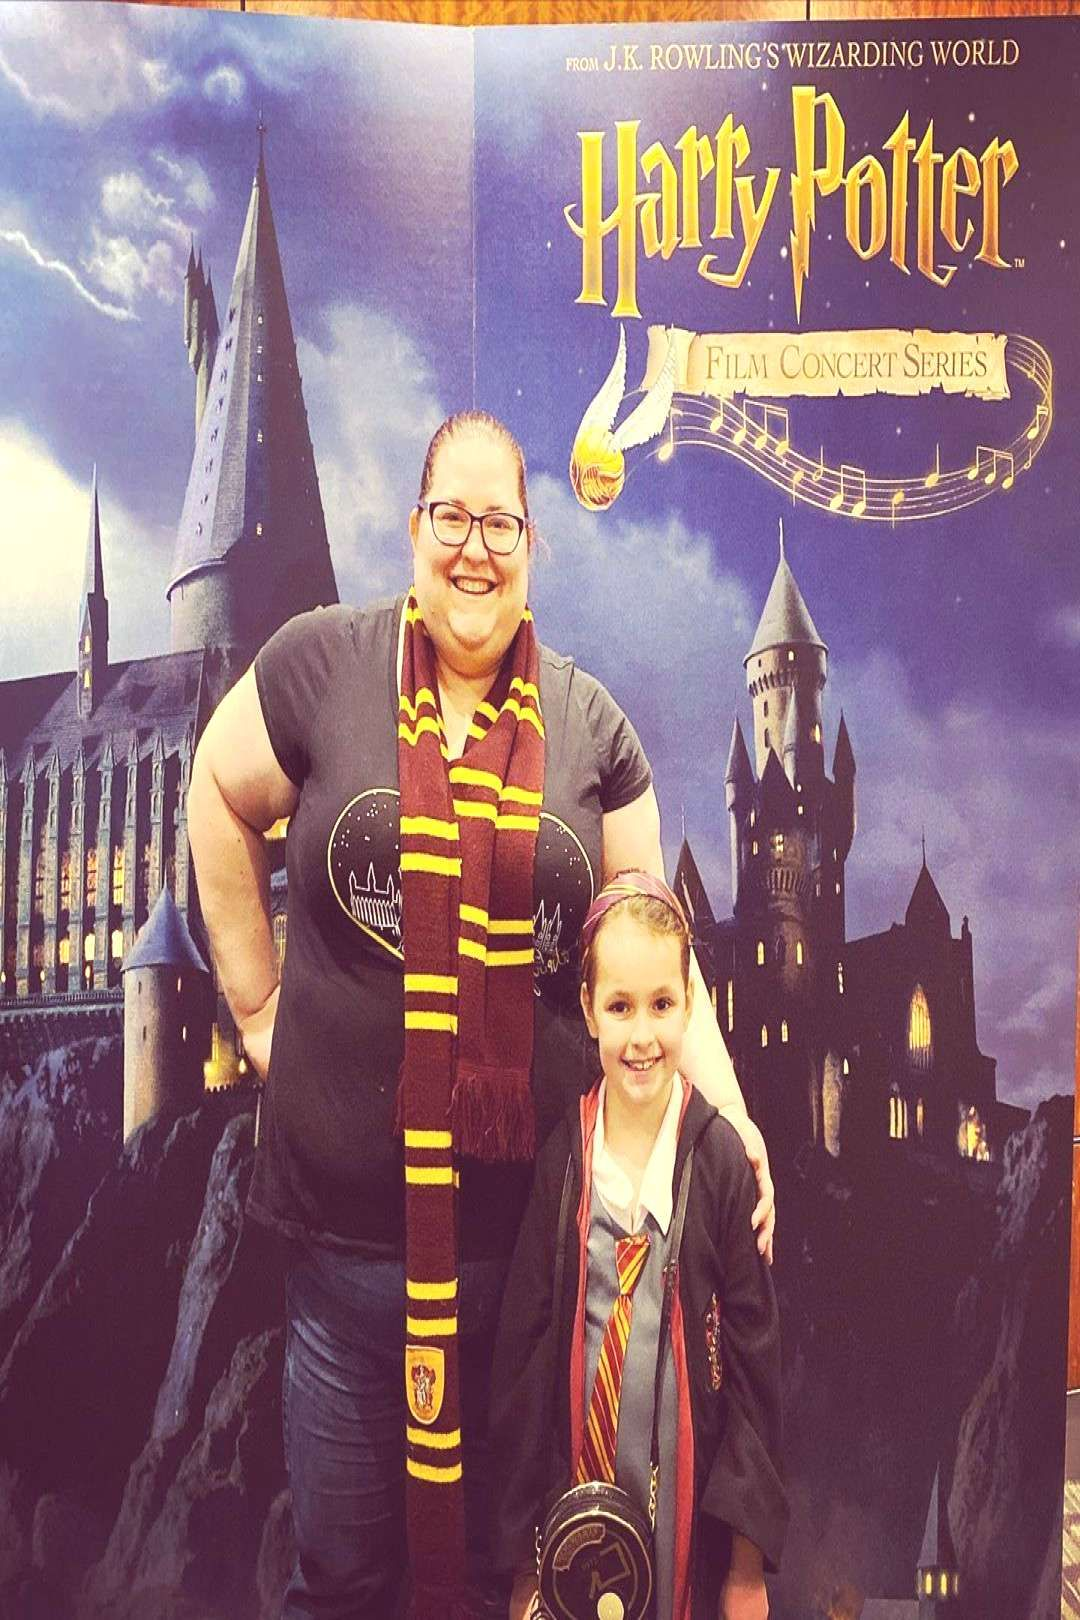 Peoplepeople Delanies Symphony Standing Delanie Potter Harry Aunt Jess And The For At 2 Aunt Jess And Delanie At The Harry Potter Symp In 2020 Harry Potter